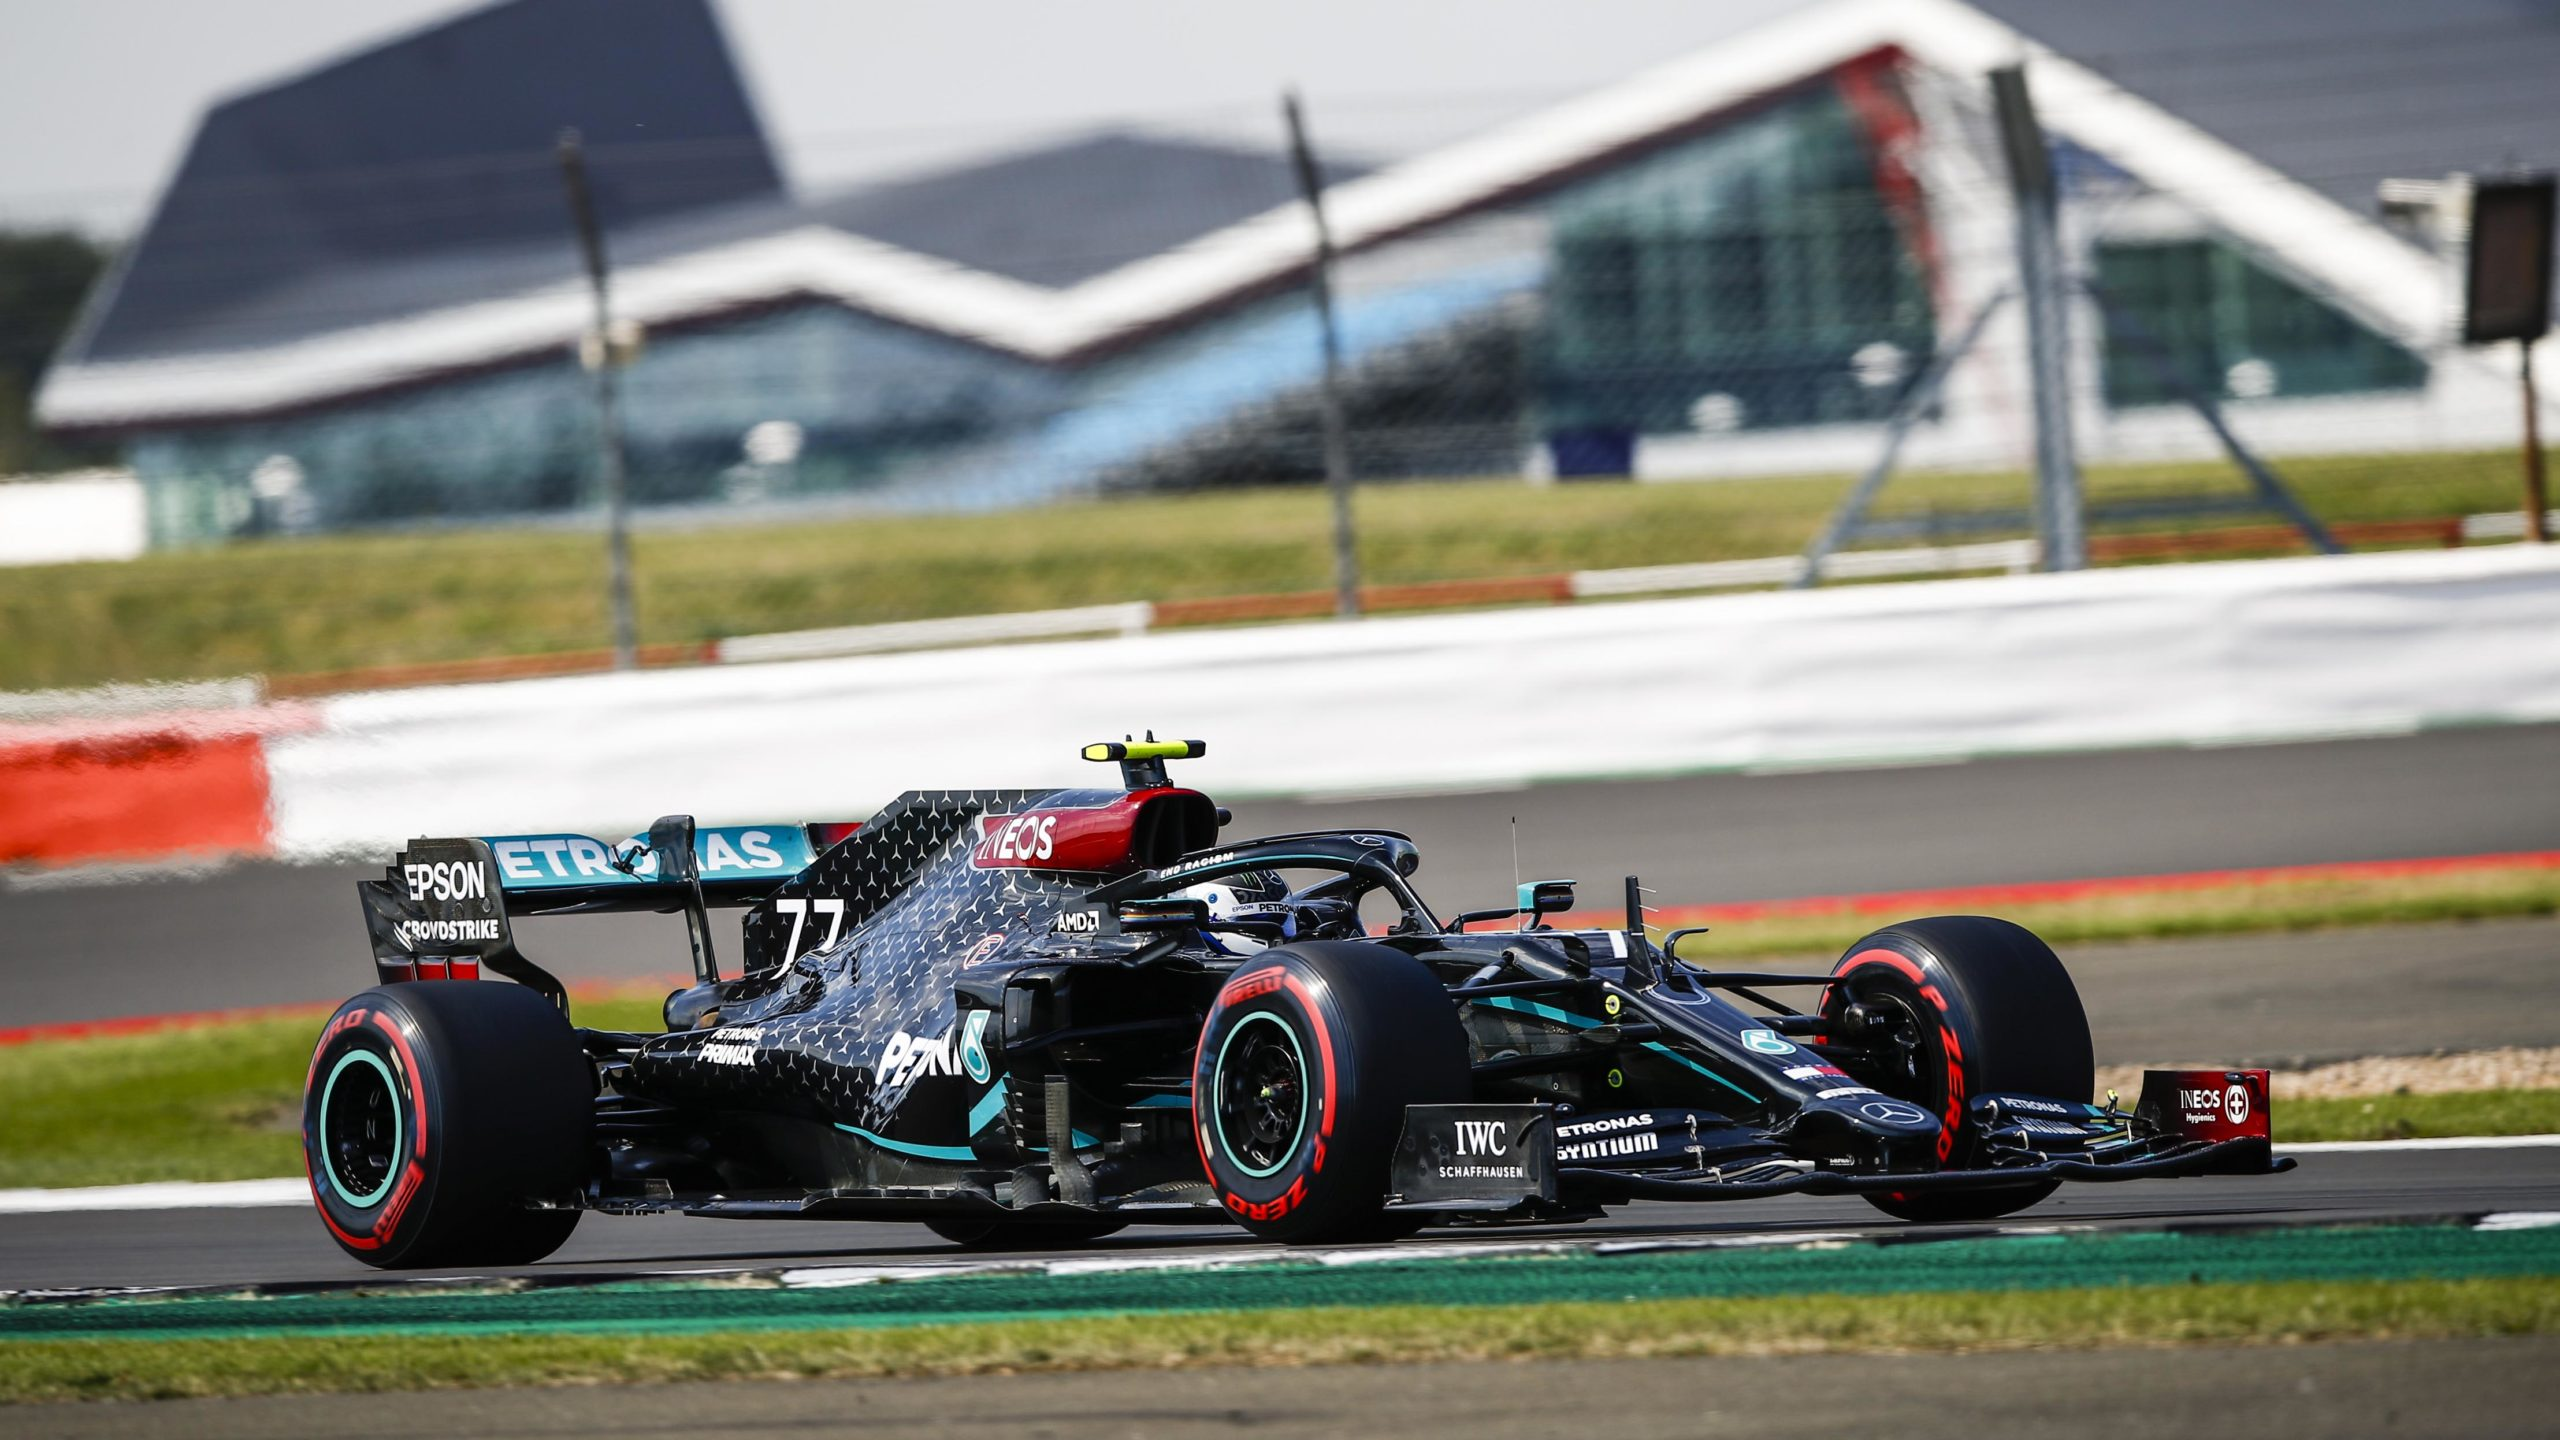 2020 F1 70th Anniversary GP qualifying report: Hülkenberg impresses behind brilliant Bottas